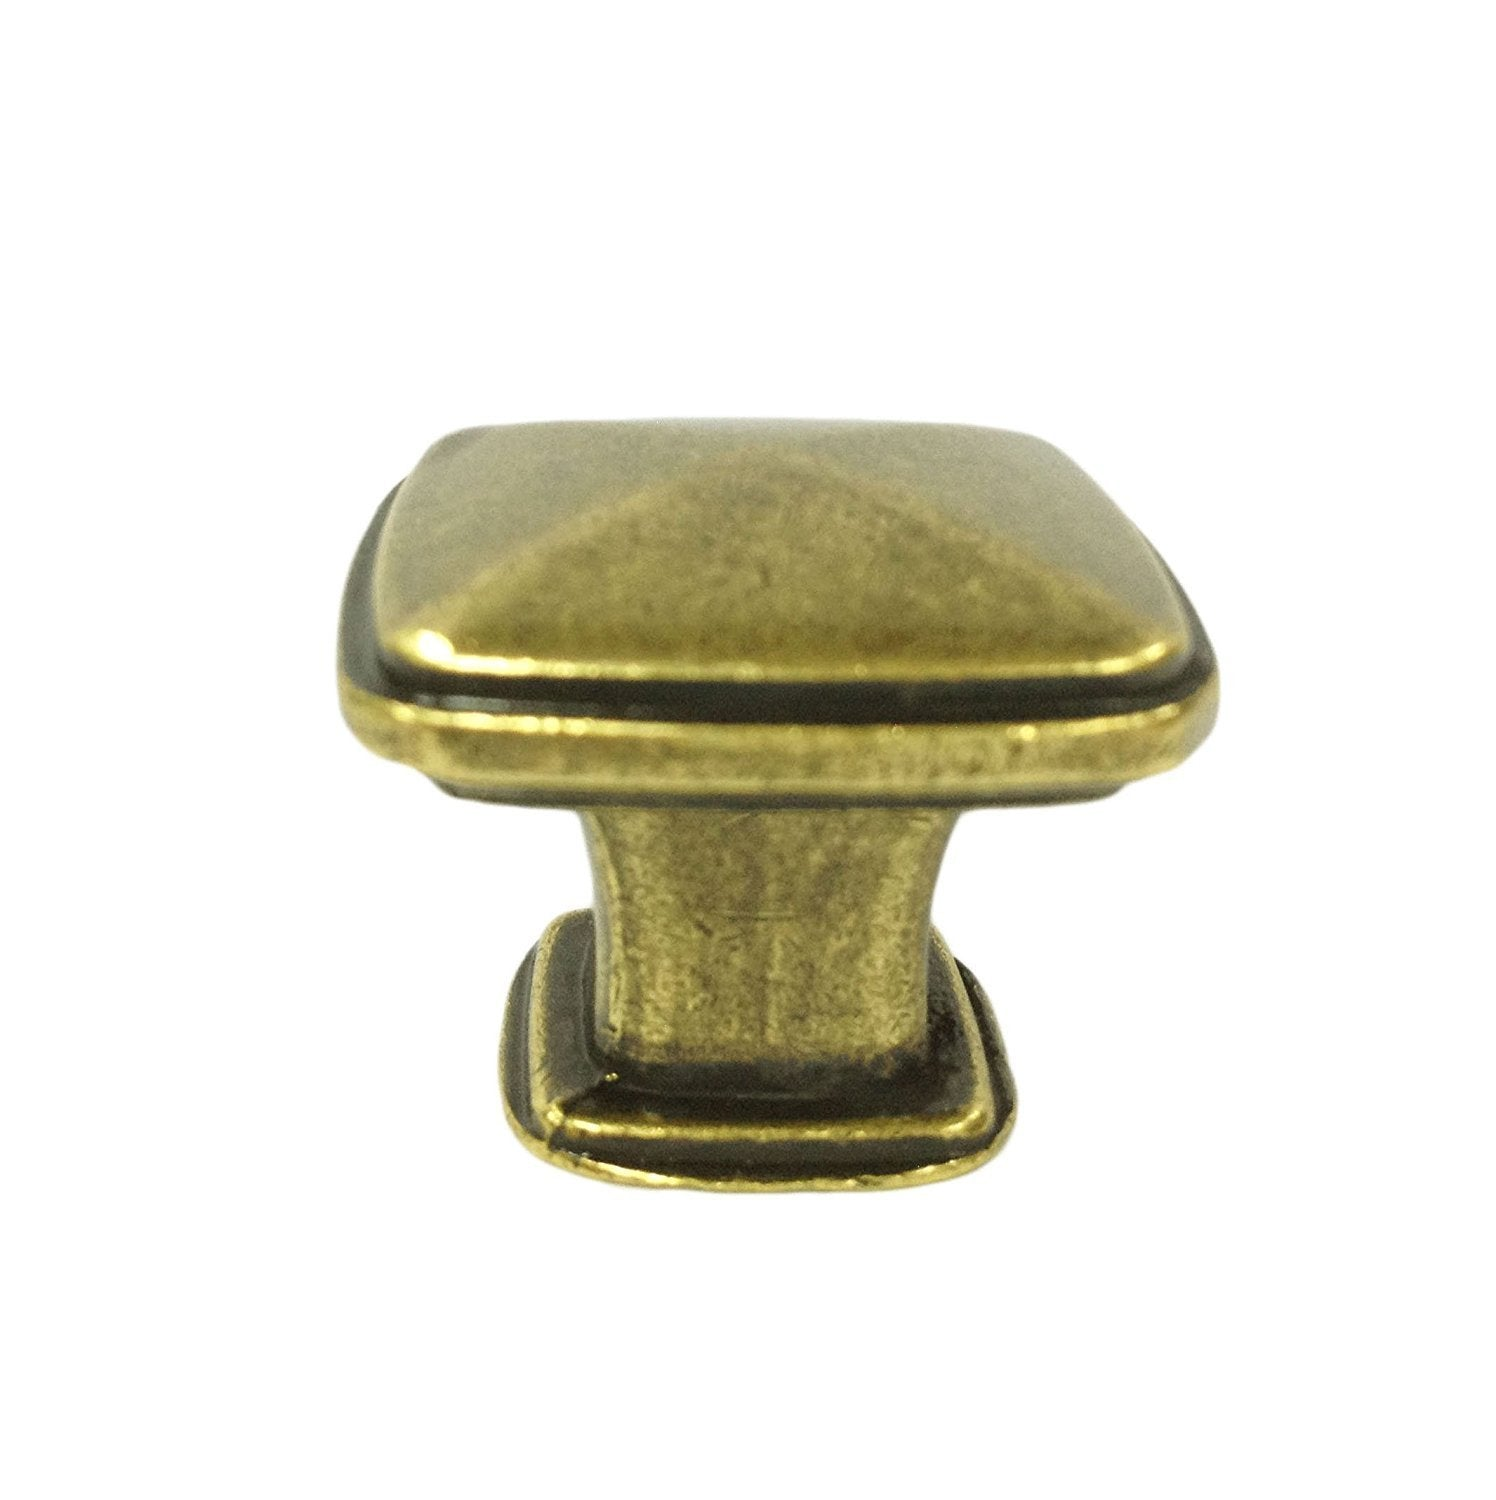 Alston Cabinet Hardware Knob 1-1/4 Inch Square - 10 Pack